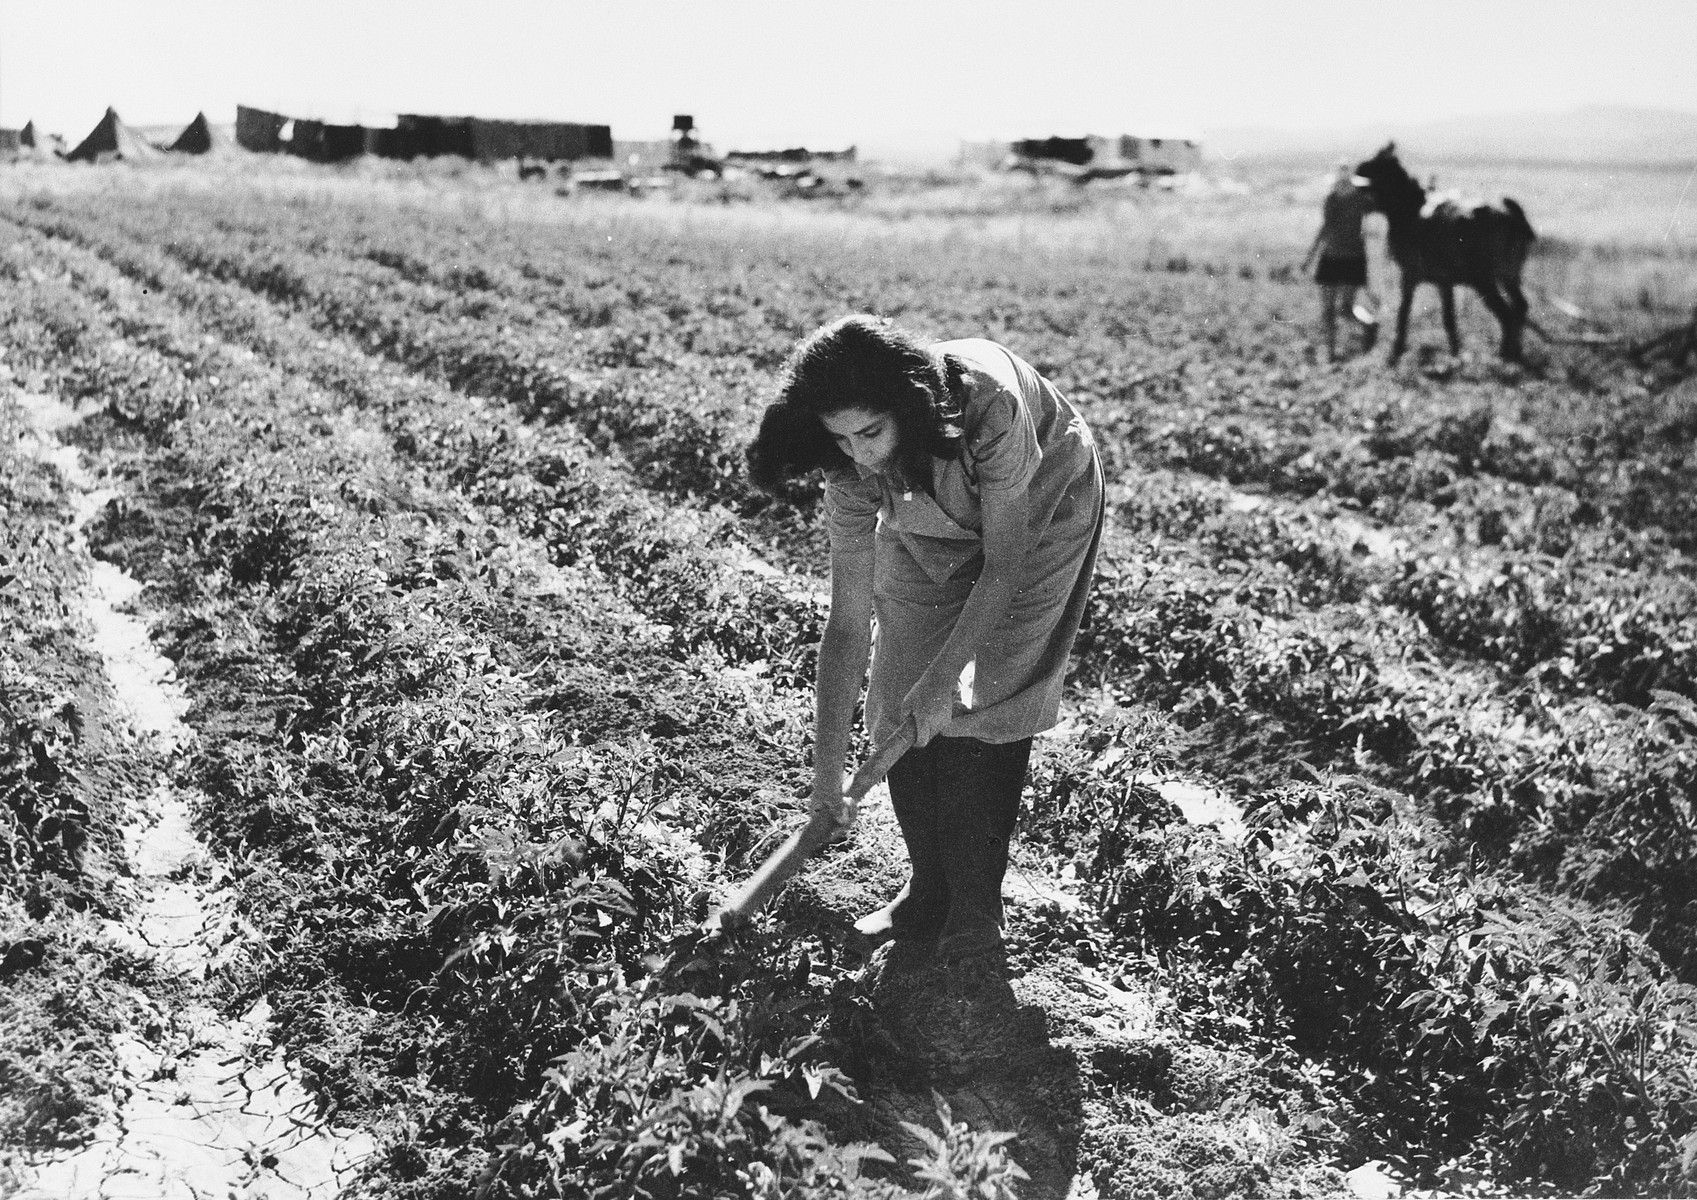 A young woman hoes a field in Tal Shachar.